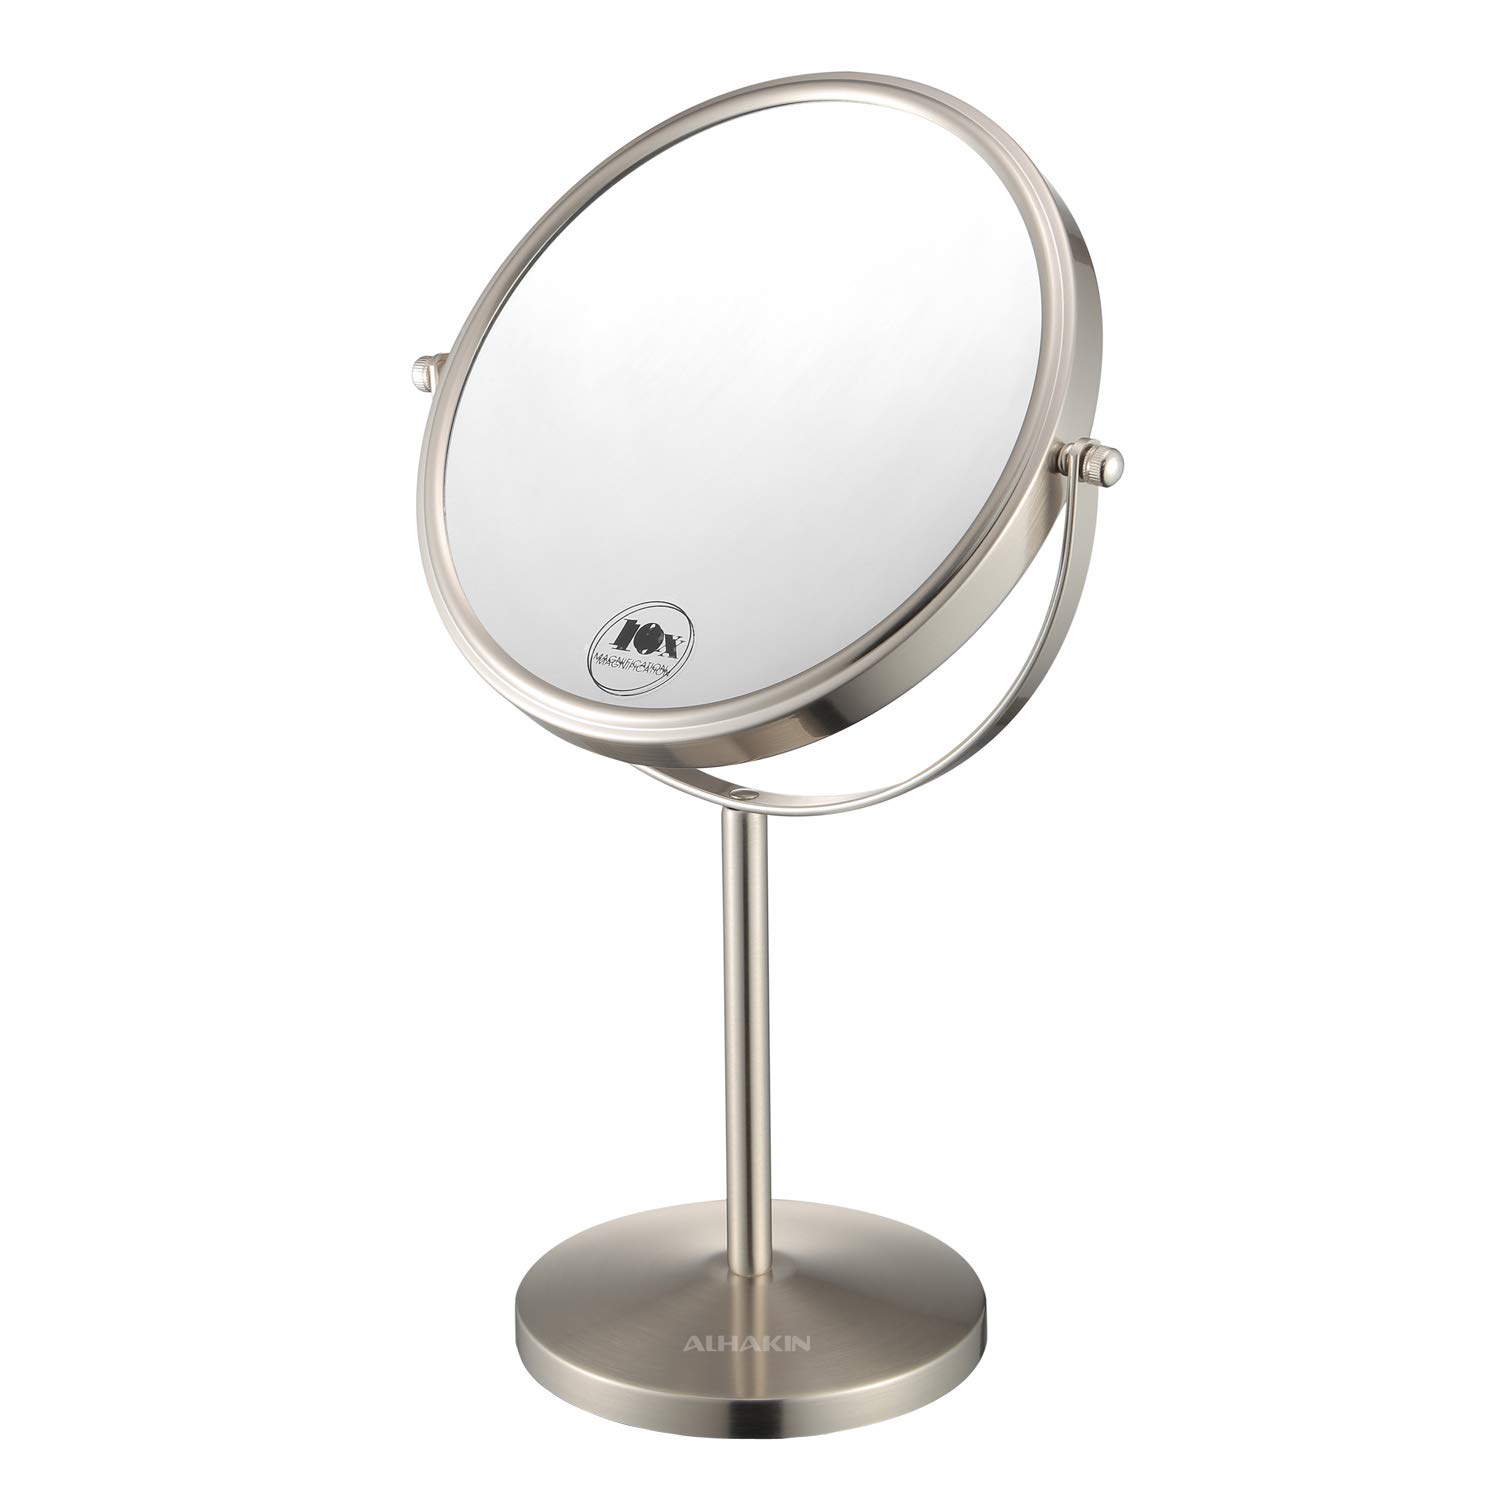 Magnifying Makeup Mirror, 8-Inch Double Sided Vanity Tabletop Mirror with 10X Magnification, Nickel Finished ALHAKIN